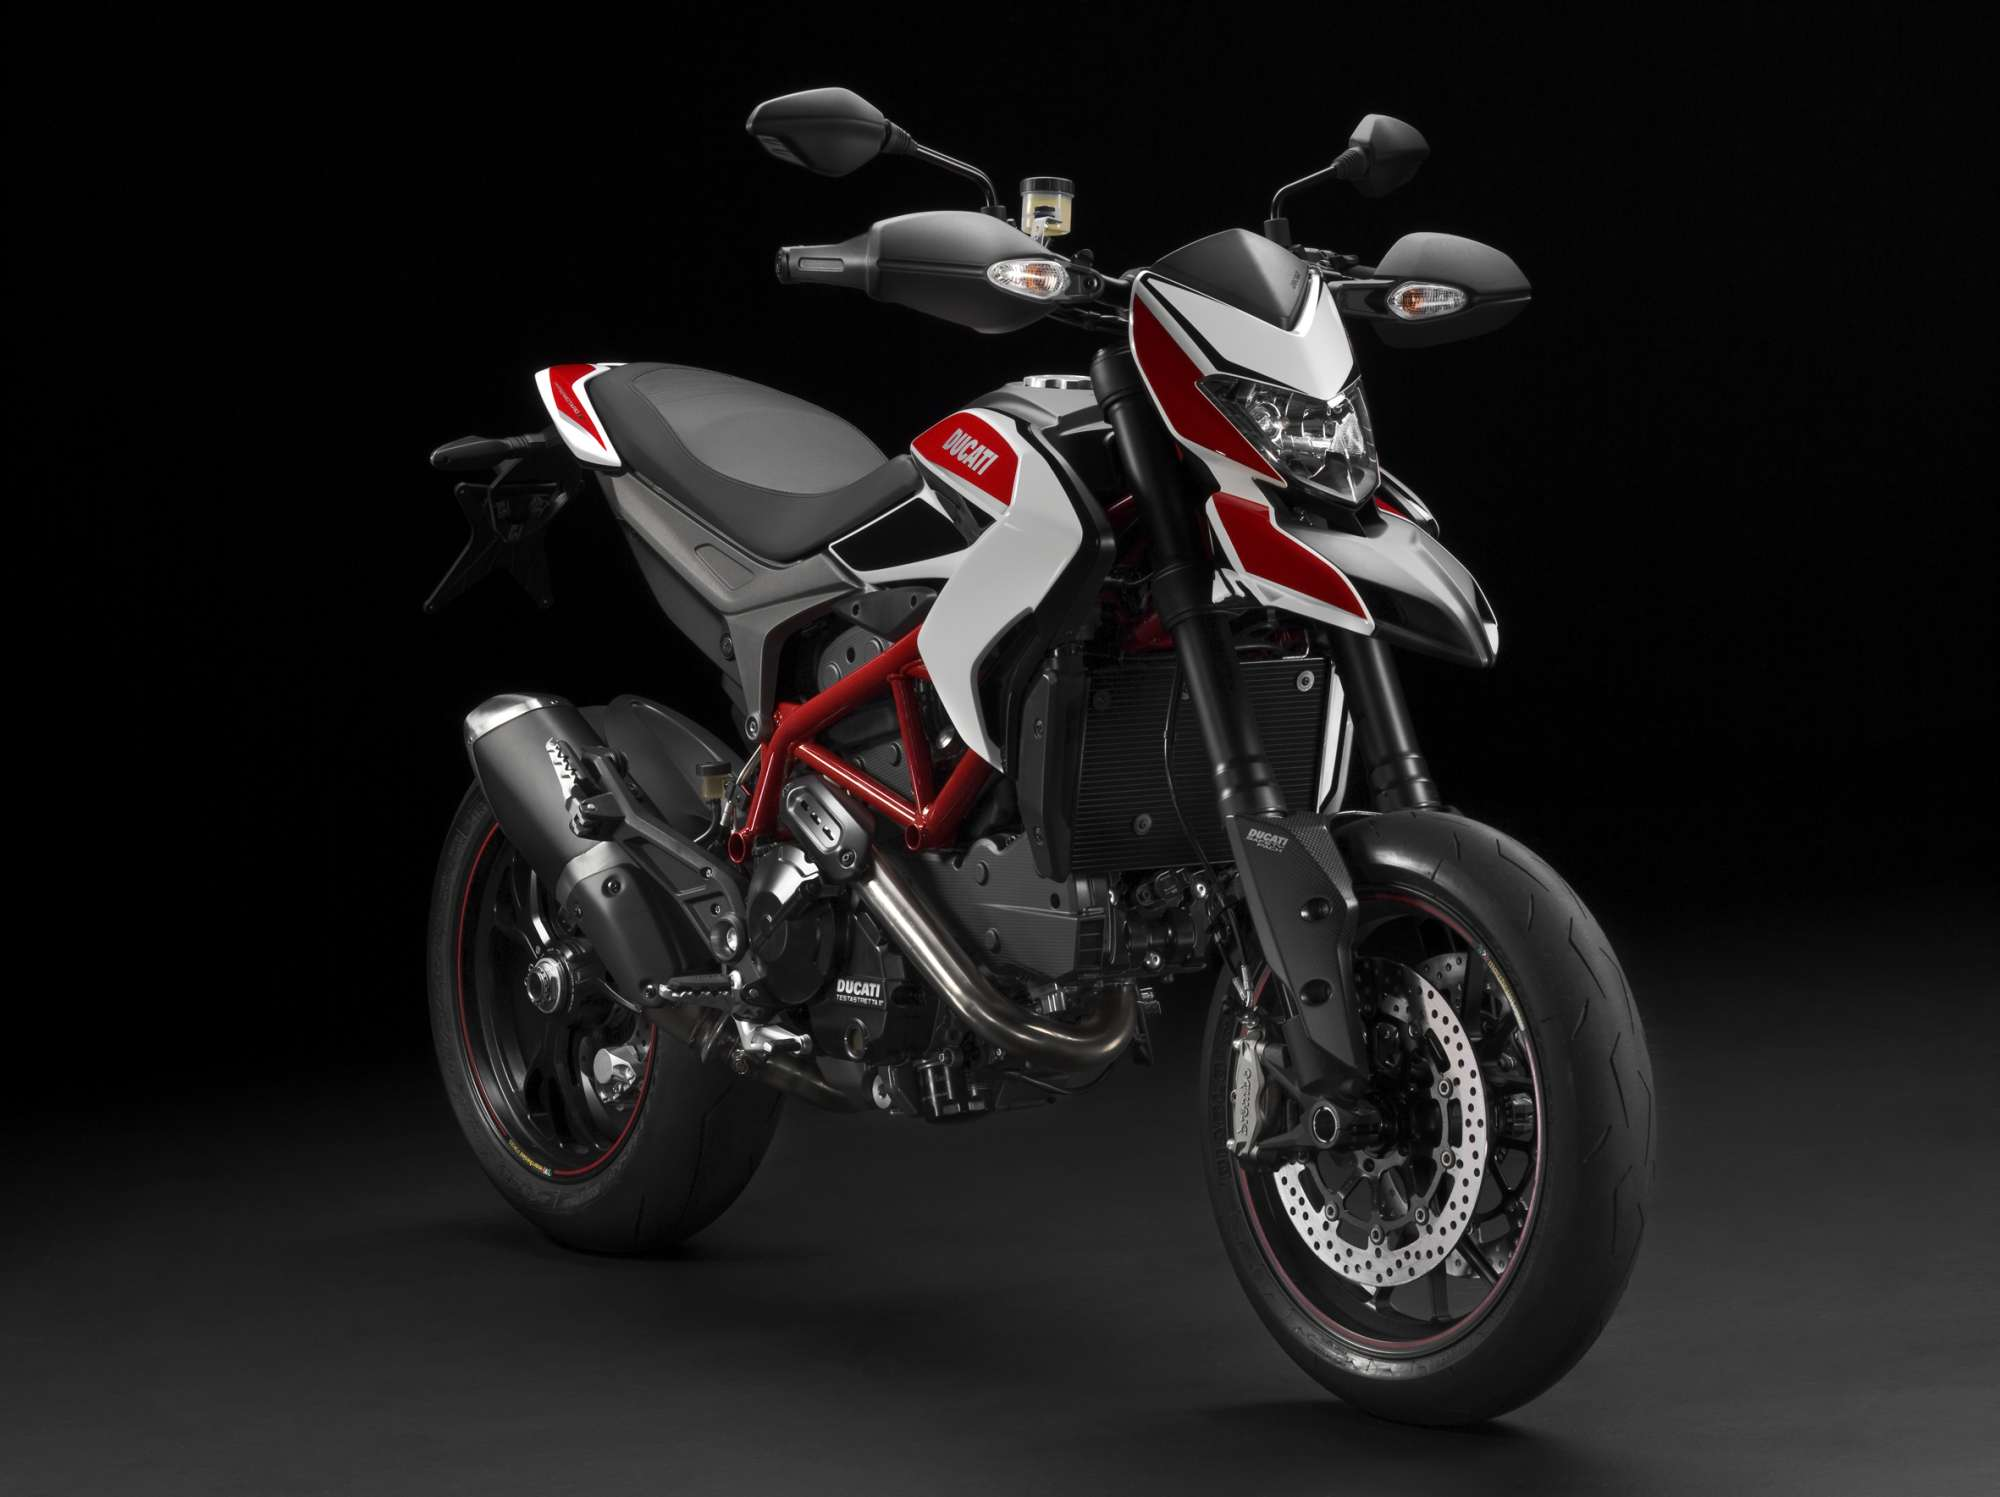 ducati hypermotard sp 821 2013 workshop service manual ebay. Black Bedroom Furniture Sets. Home Design Ideas